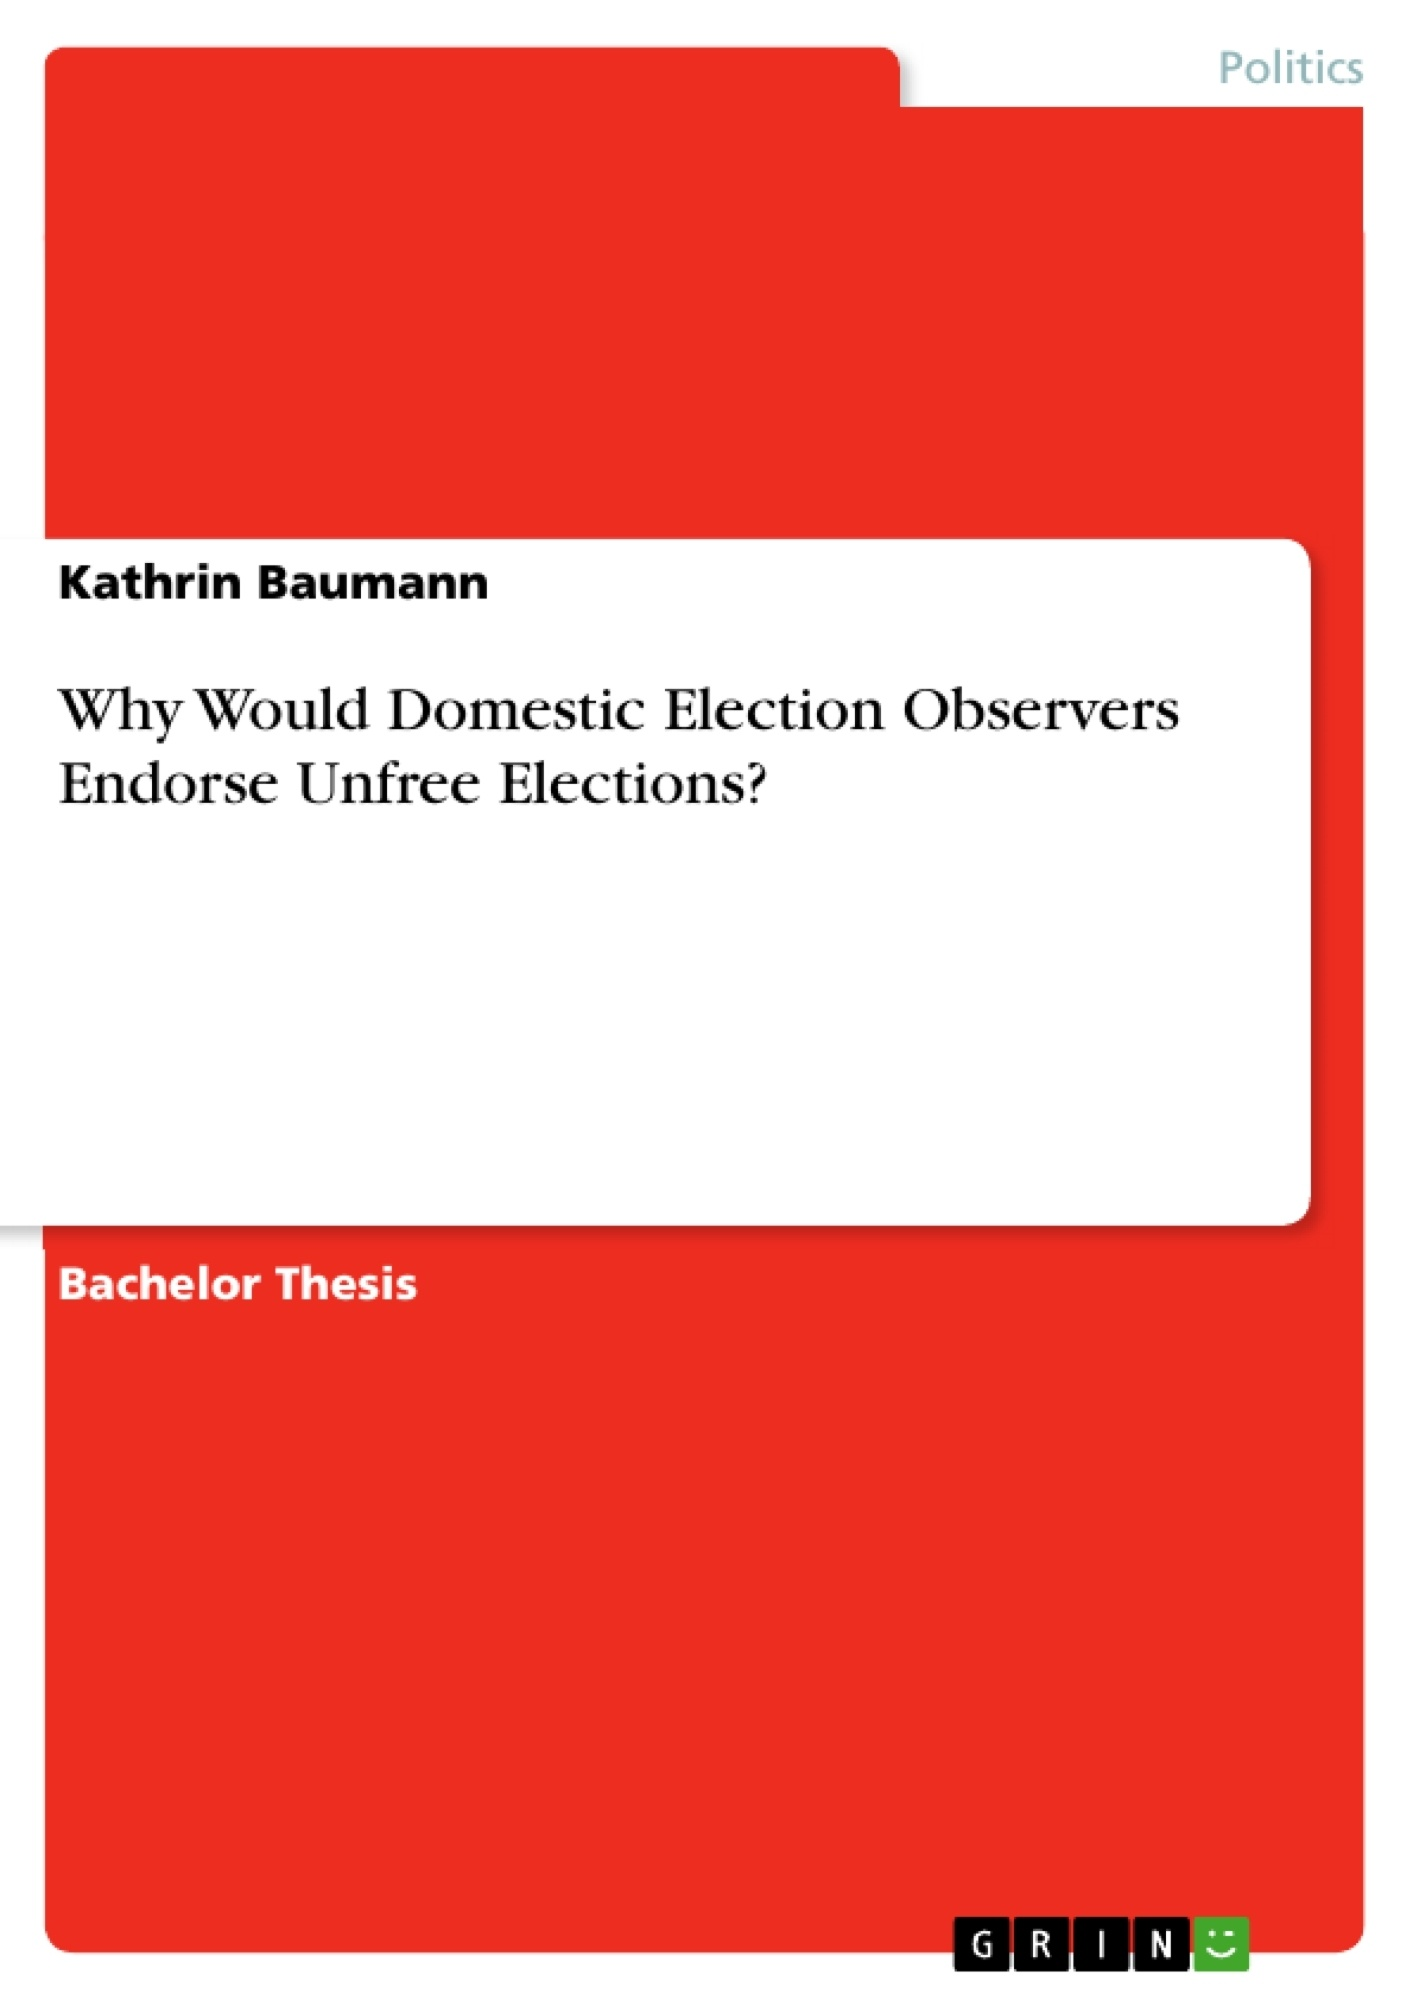 Title: Why Would Domestic Election Observers Endorse Unfree Elections?